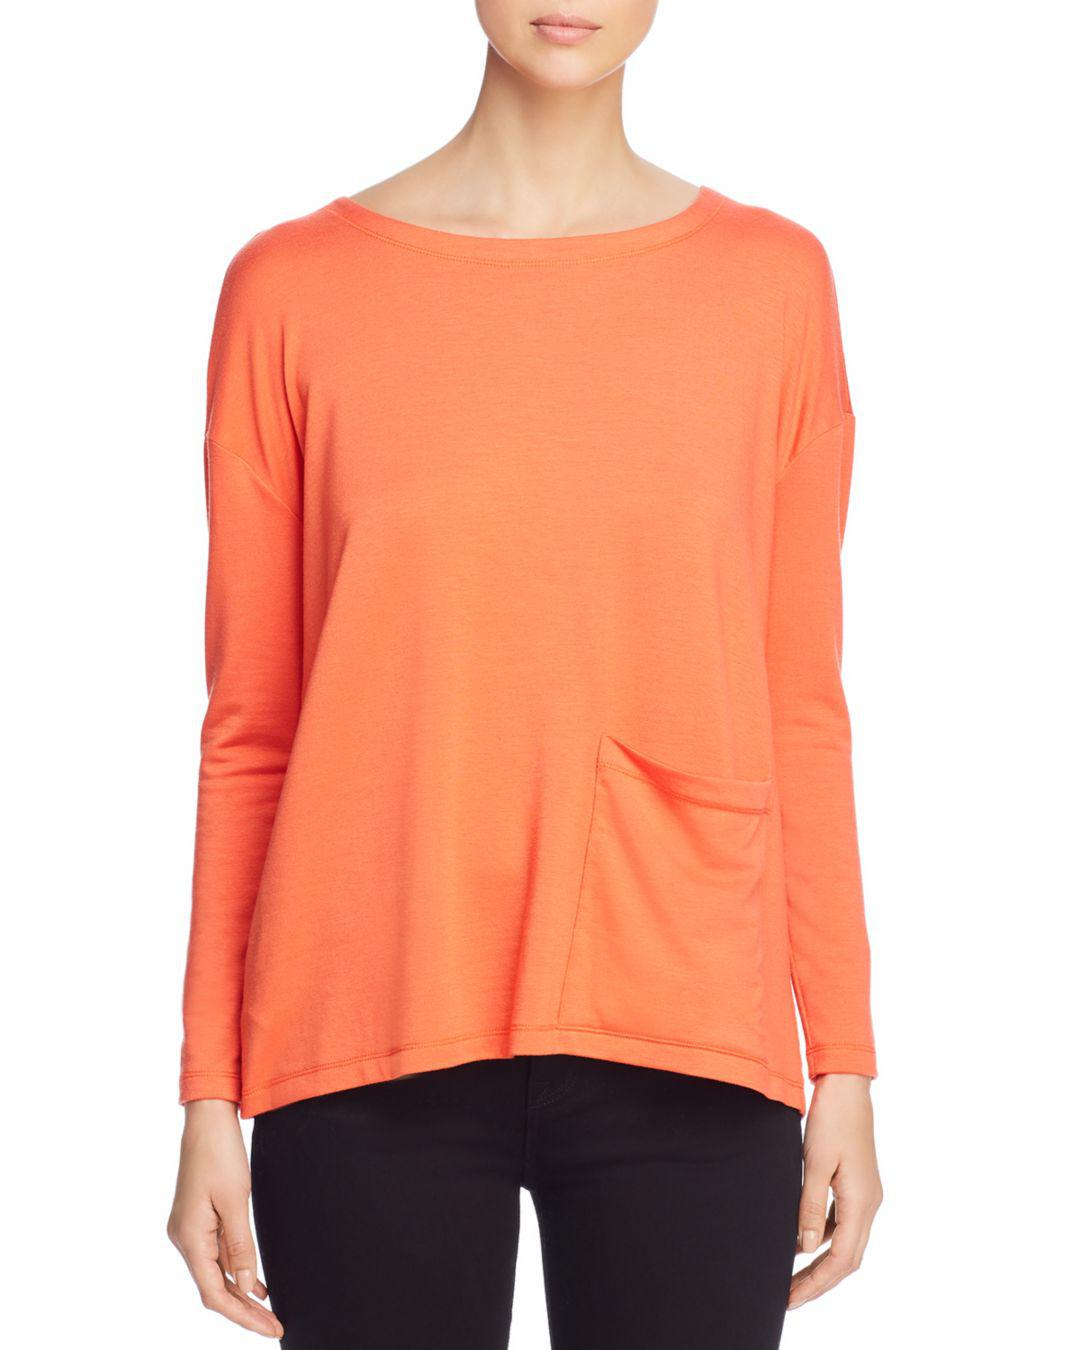 00efcf03283 Eileen Fisher Long-sleeve Boat-neck Top in Orange - Lyst